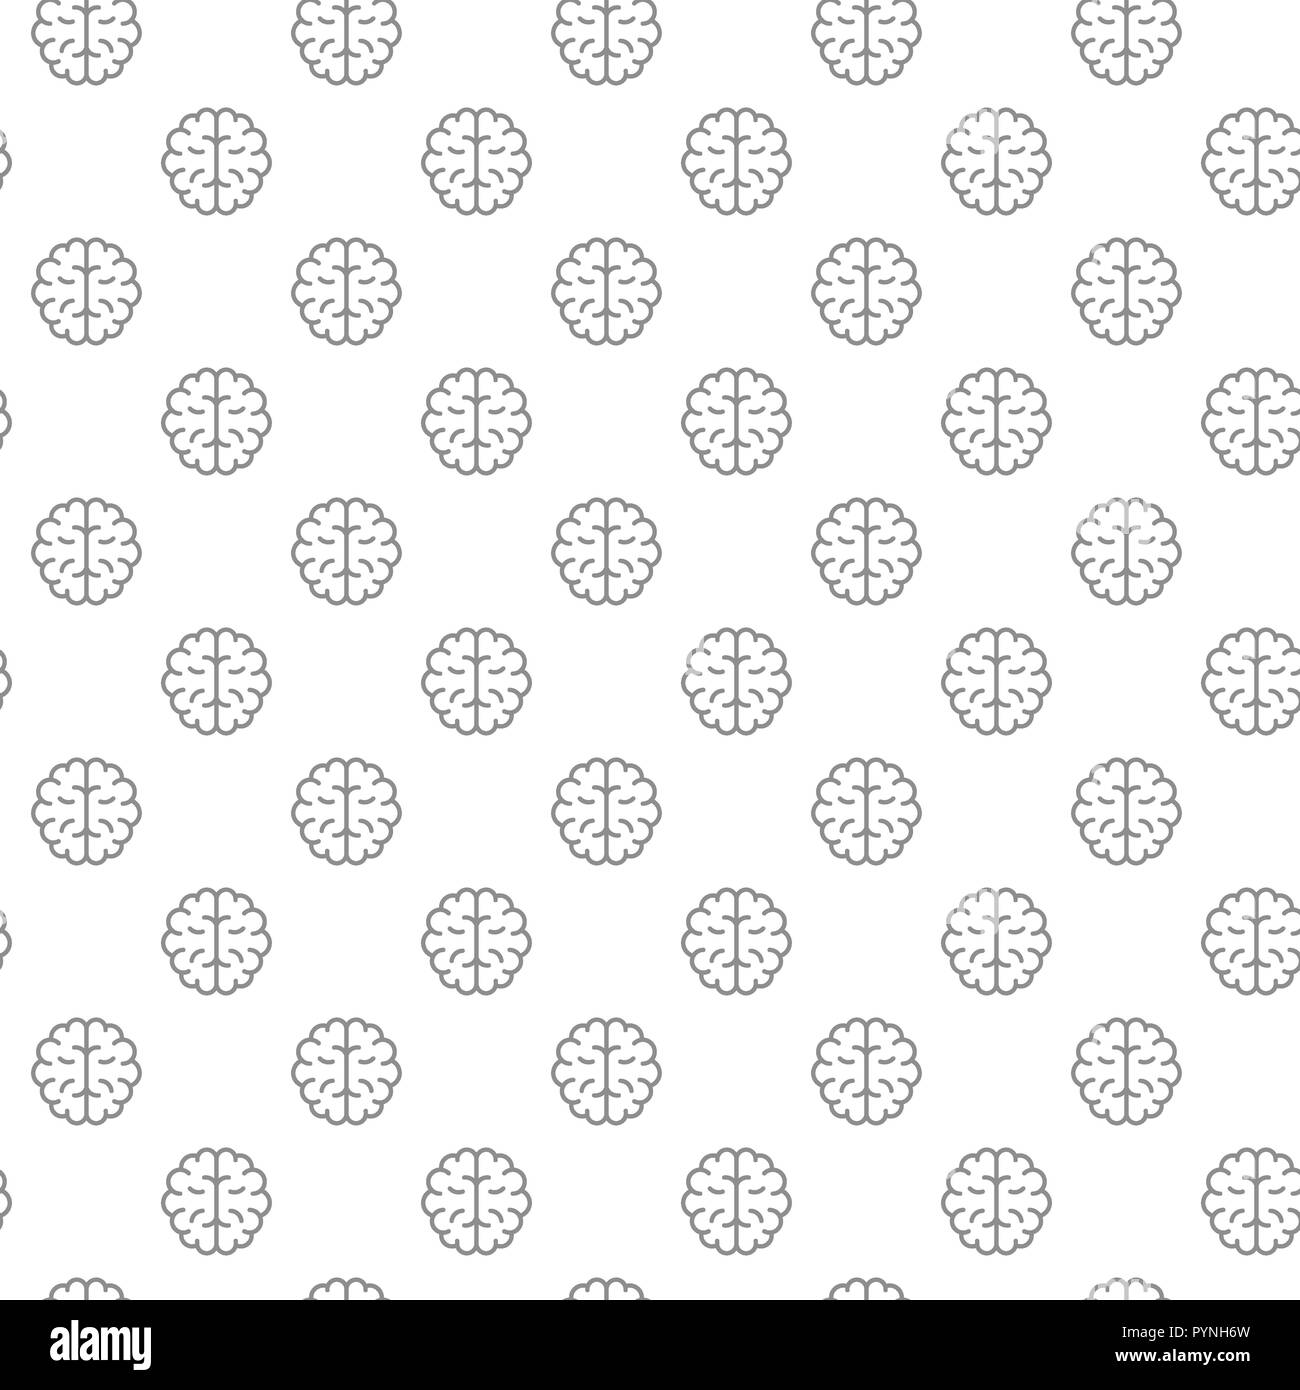 Unique brain seamless pattern with various icons and symbols on white background flat illustration - Stock Image